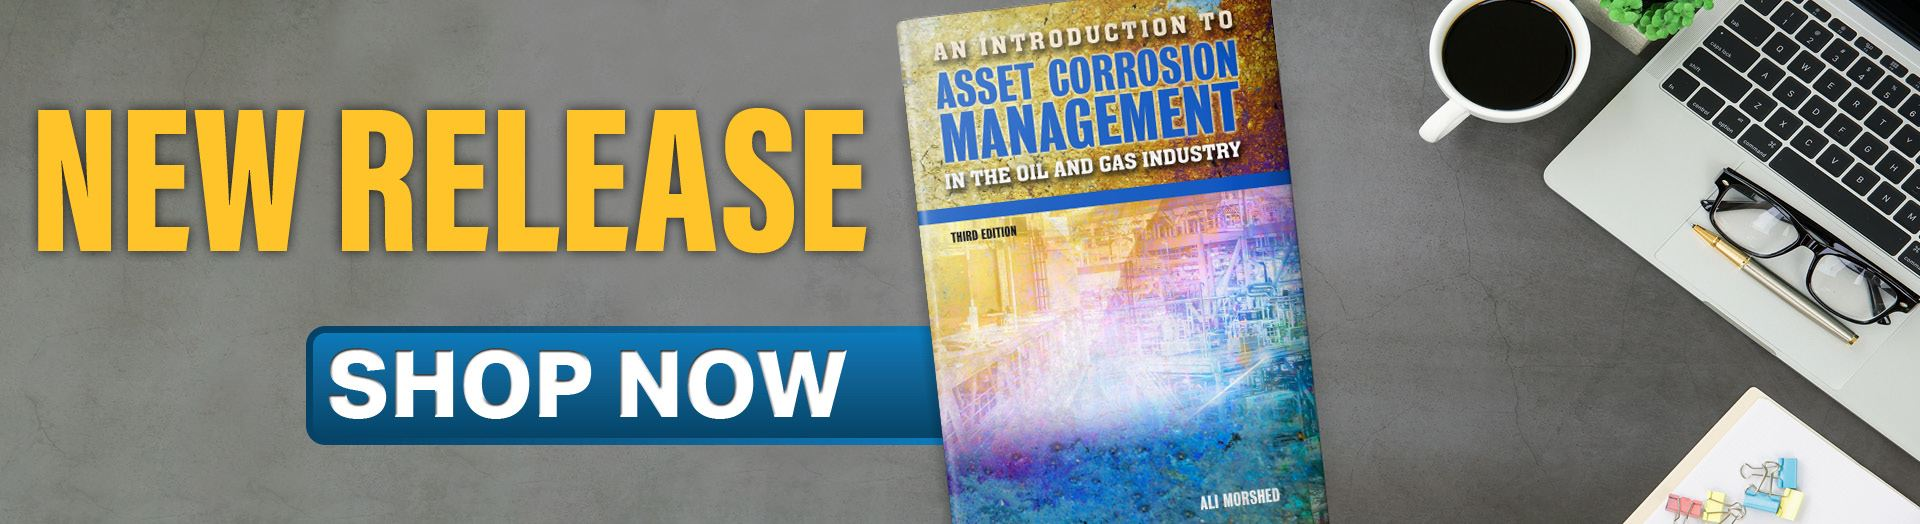 New Release: Asset Corrosion Management